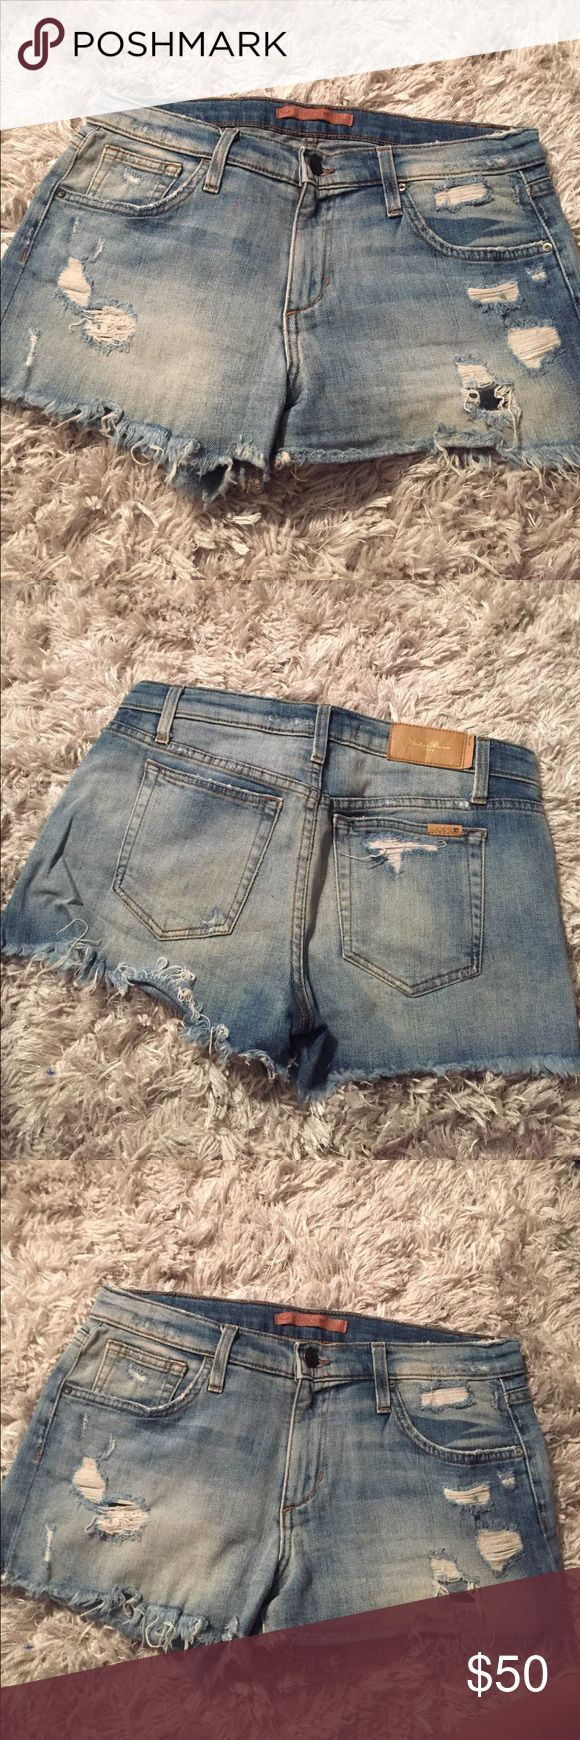 Joe's jeans  acid wash Jean shorts, size 26 Joe's jeans acid wash Jean shorts, size 26 Joe's Jeans Shorts Jean Shorts